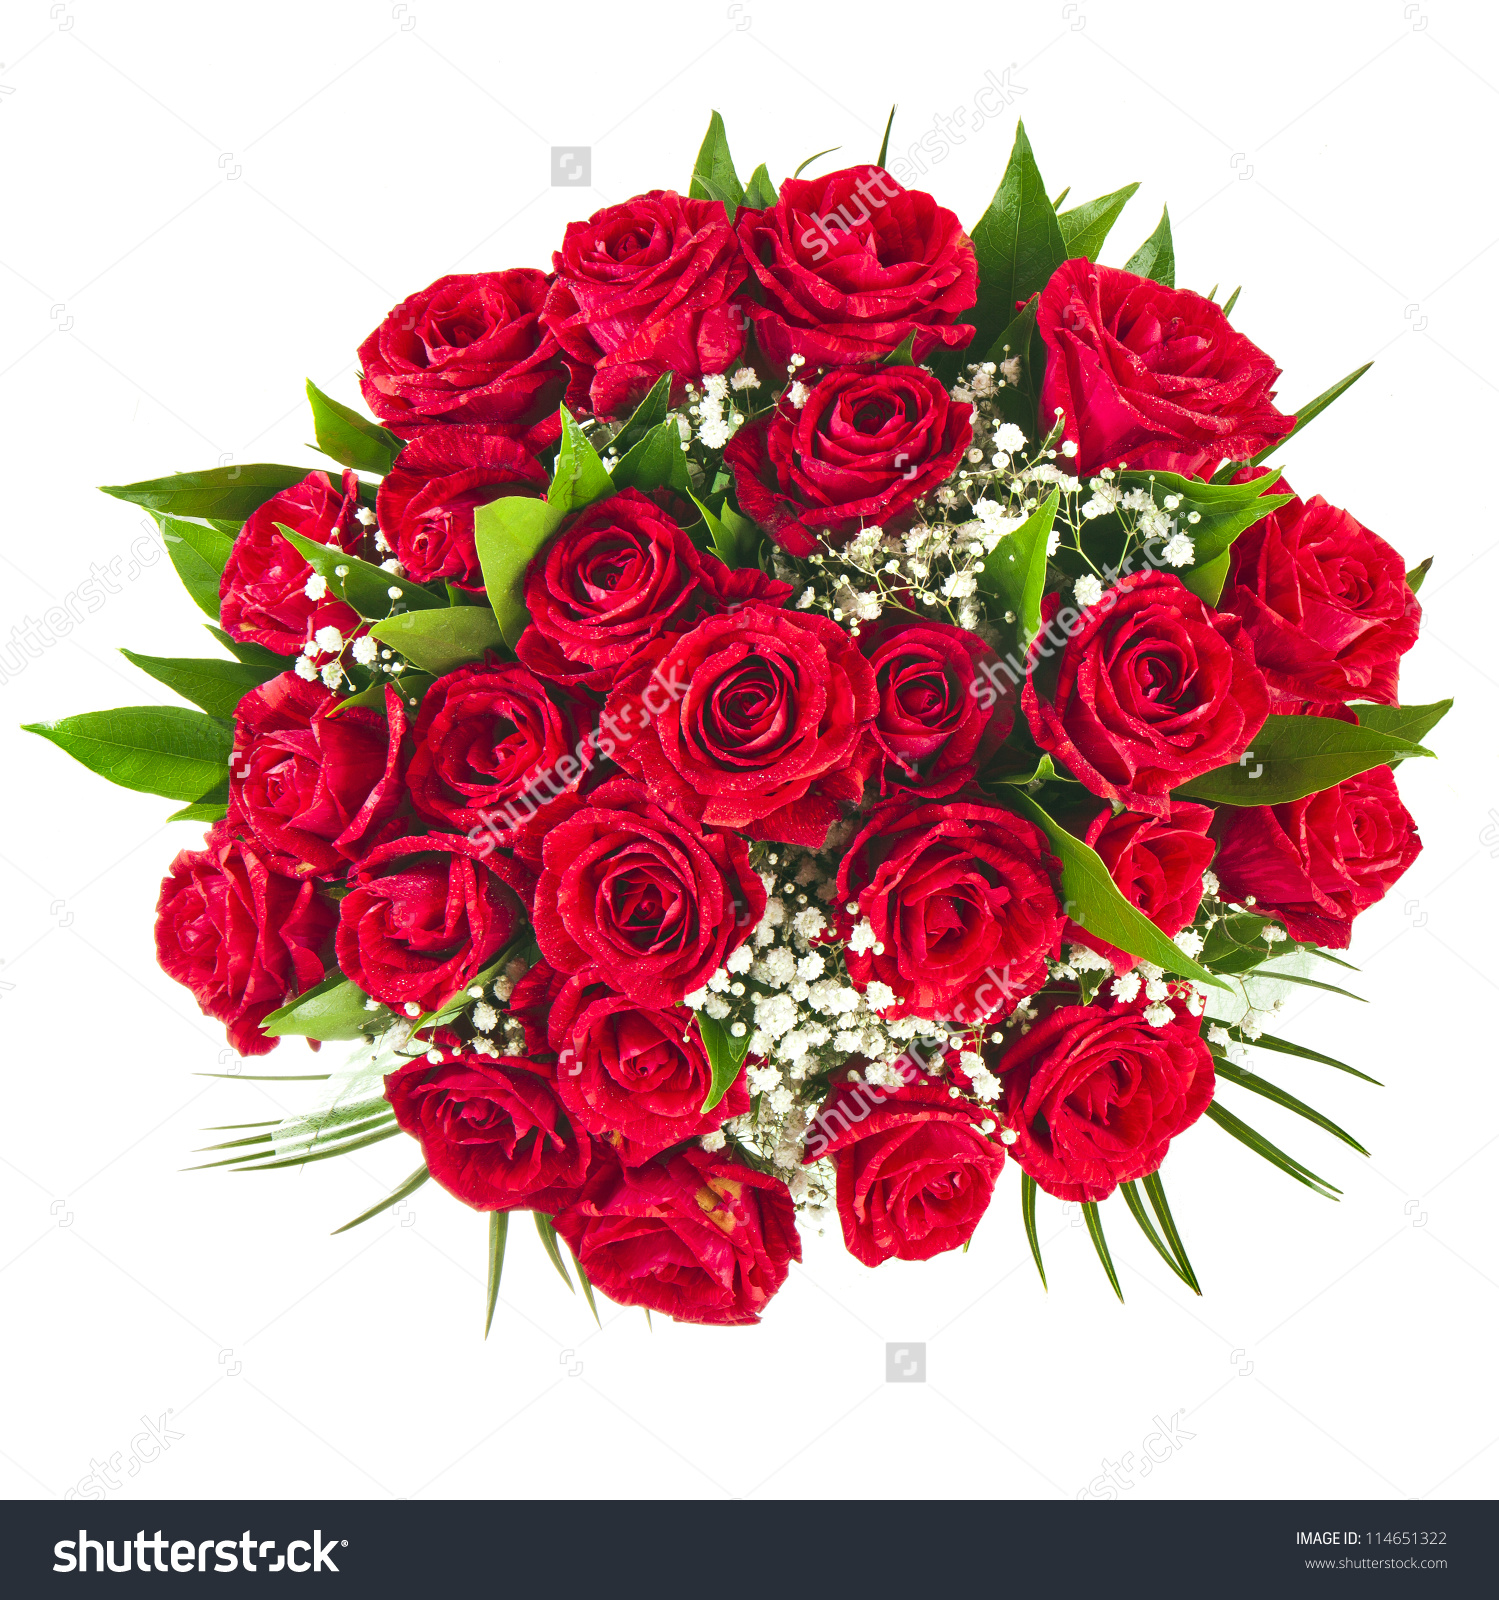 Big bunch of flowers image banner library stock Big Bunch Bouquet Red Roses Isolated Stock Photo 114651322 ... banner library stock